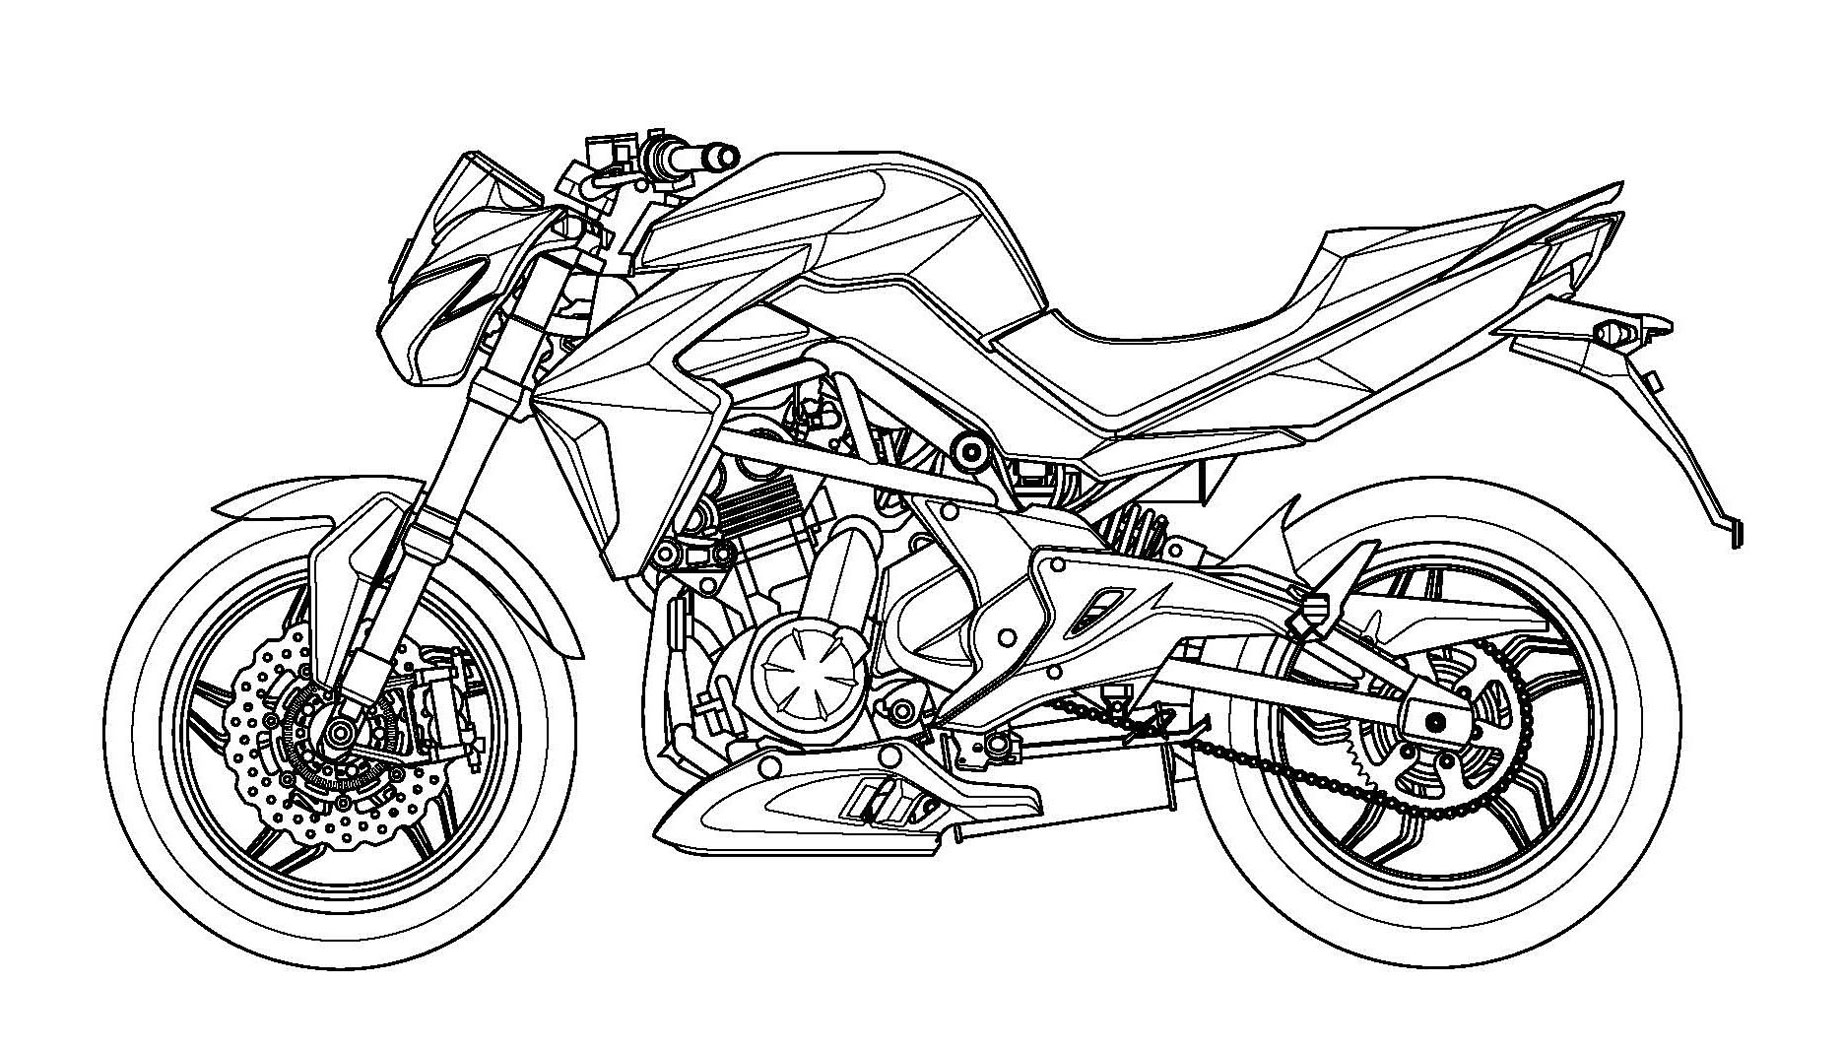 kymco patents its version of kawasaki er